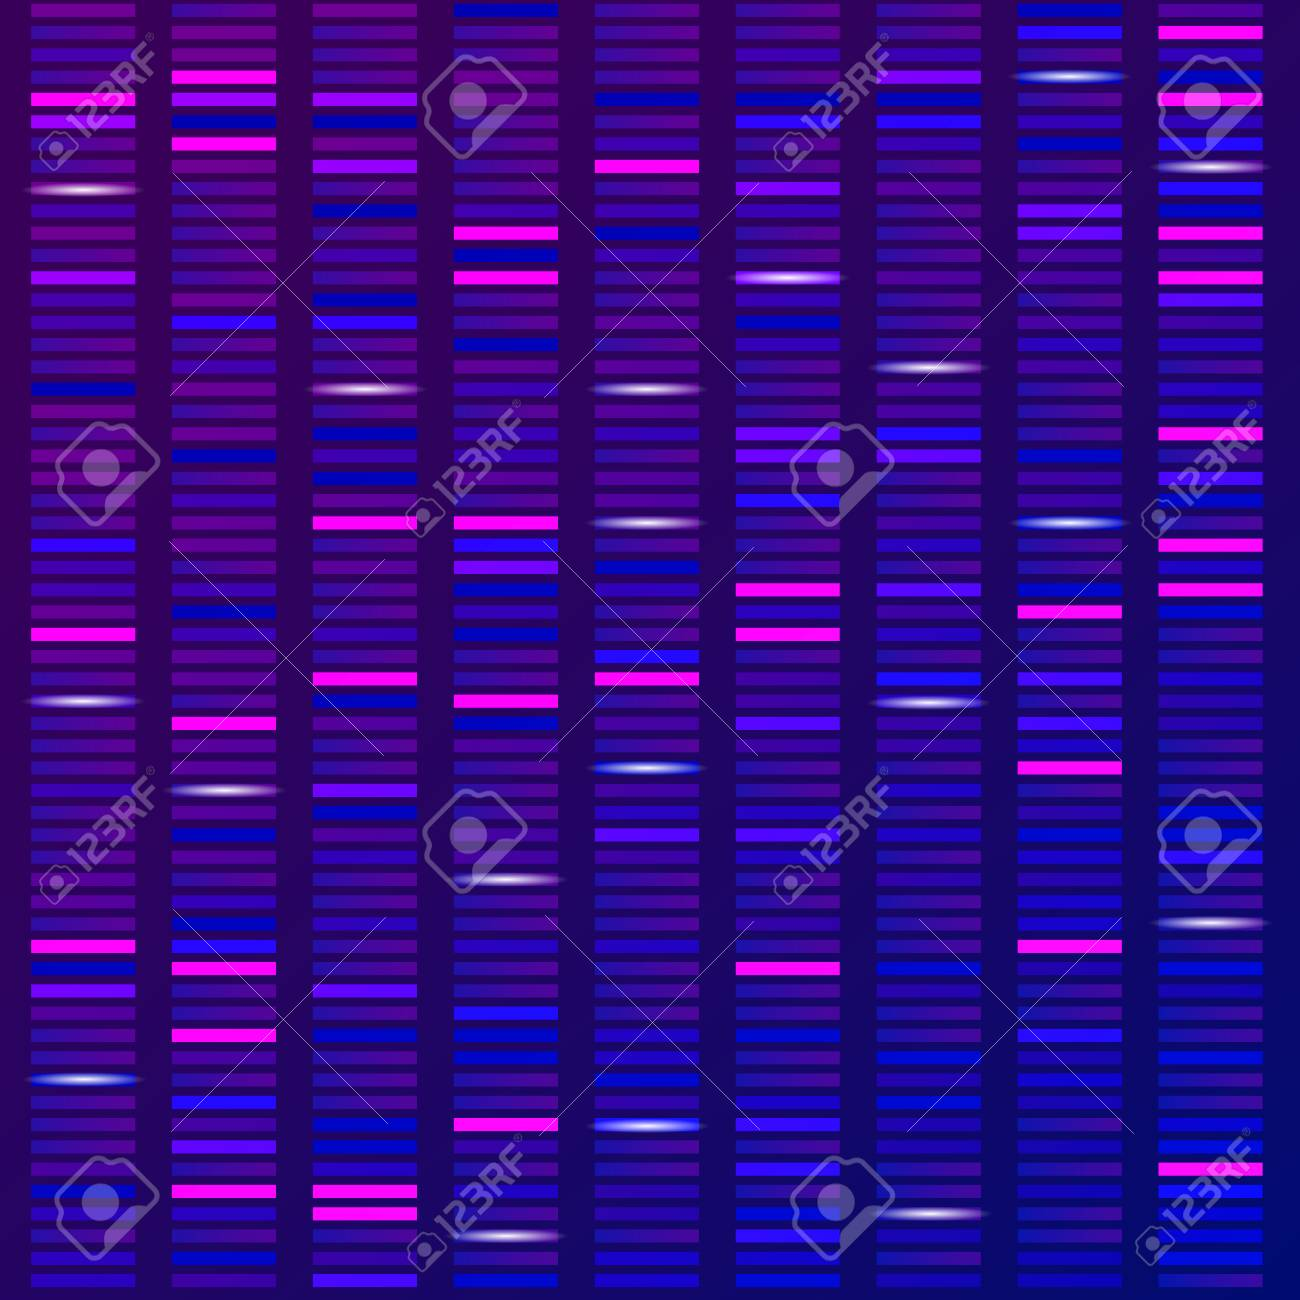 Genome science structure visualization, DNA test background. Vector illustration - 124926063